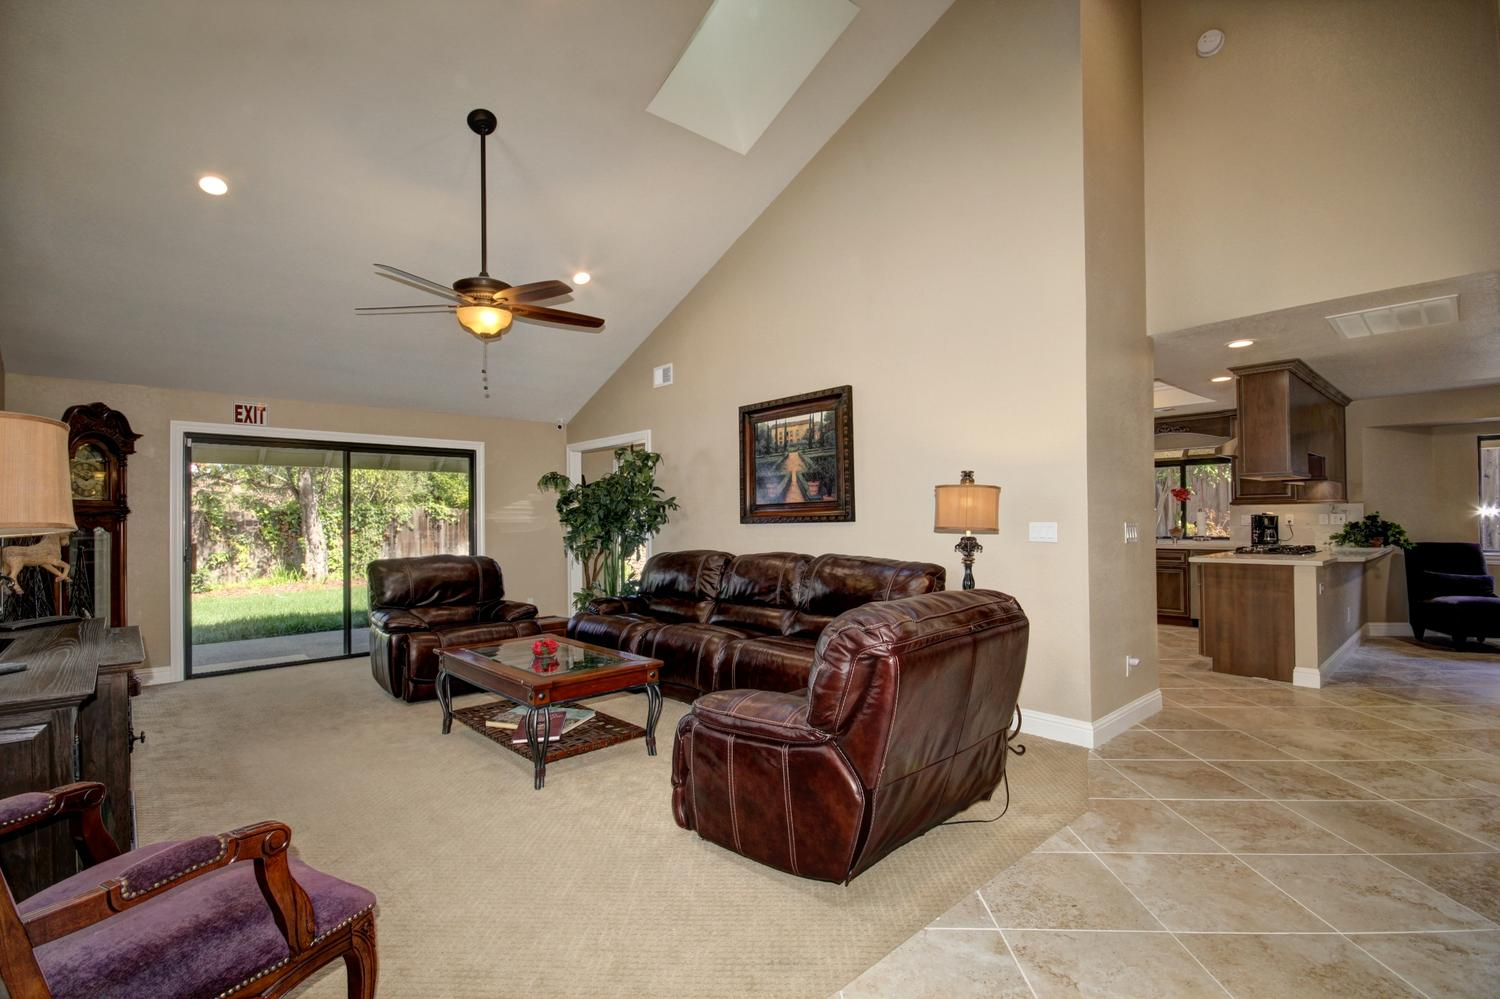 1105 Nob Hill Ct Roseville CA-large-004-6-04-1500x999-72dpi